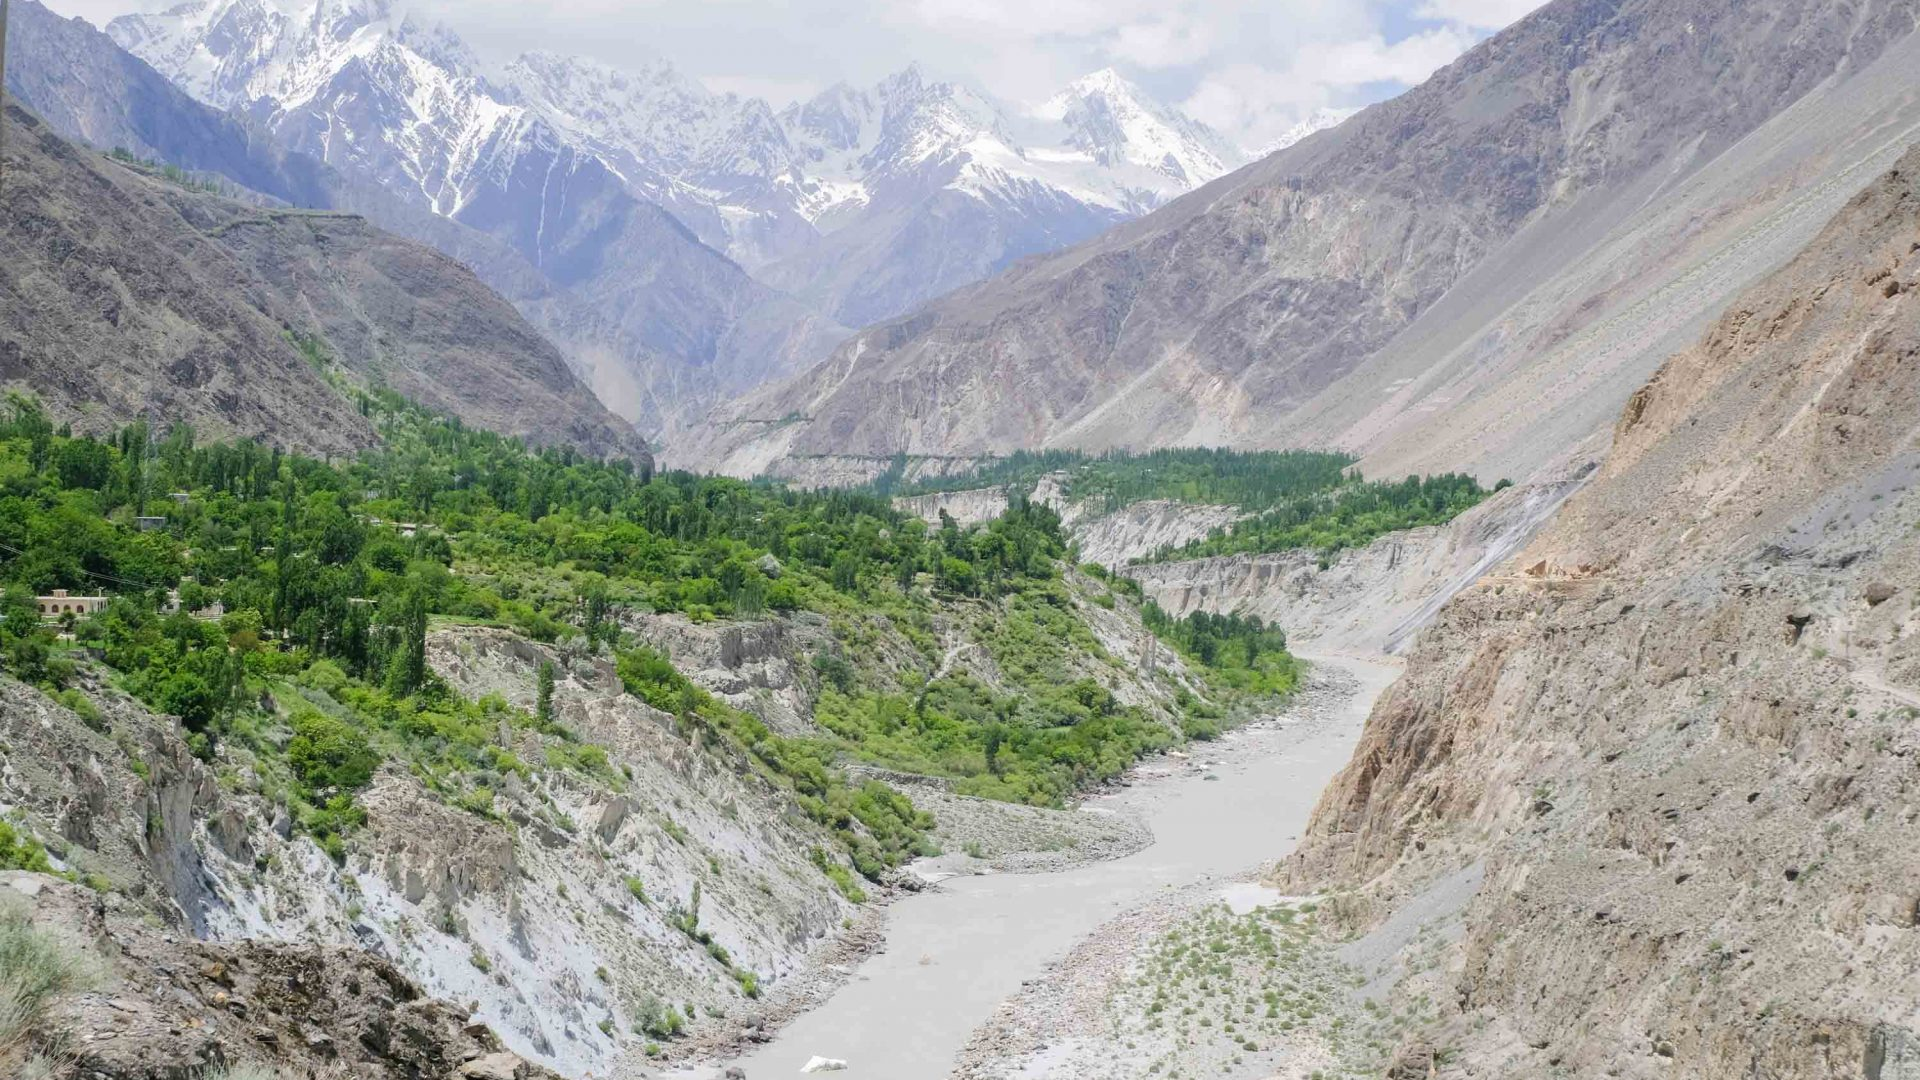 The stspectacular Karokoram mountains in Pakistan.